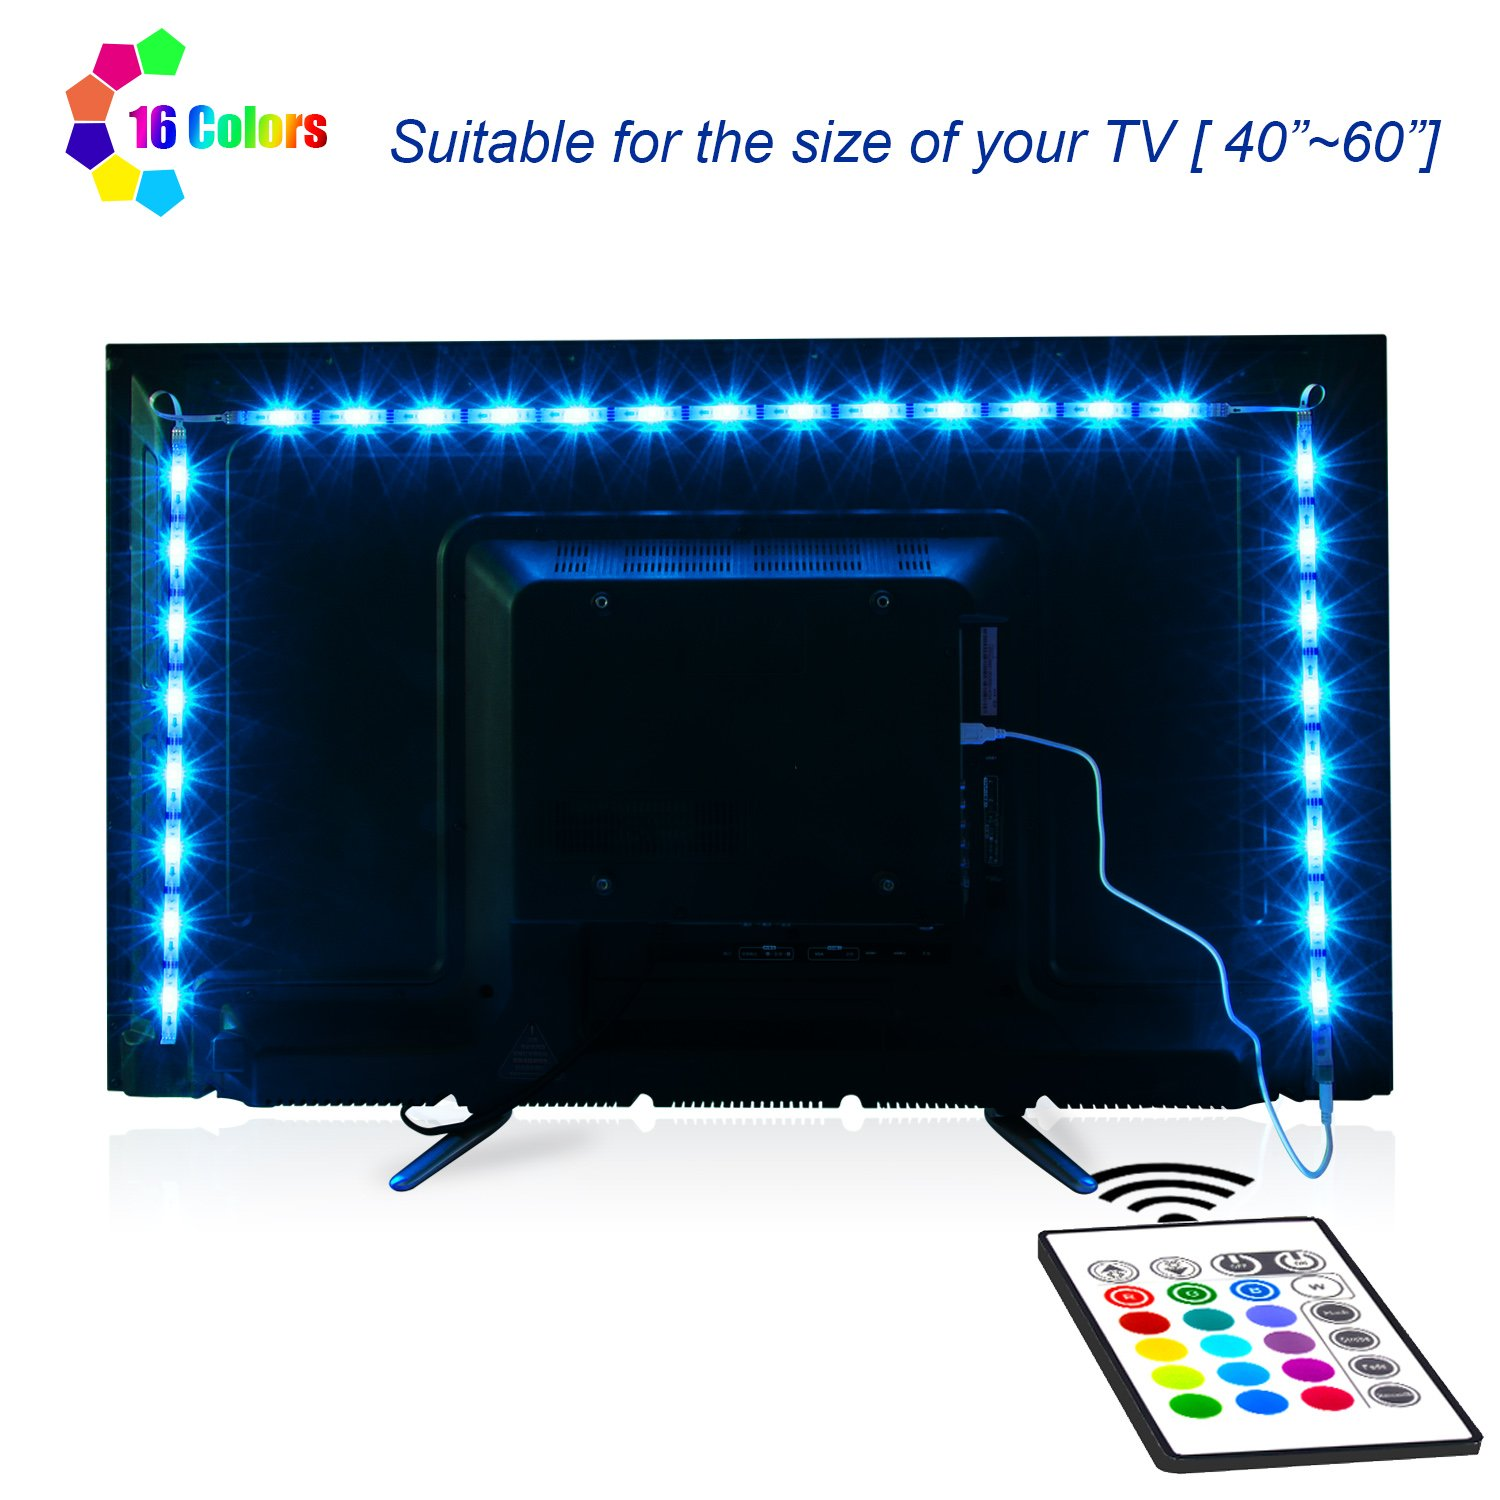 LED TV Backlight, Maylit 2M/6.56ft RGB Neon Accent LED Lights Strips for 40 to 60 in HDTV Neon Light Bias Lighting with Remote, USB LED Strips TV Backlight